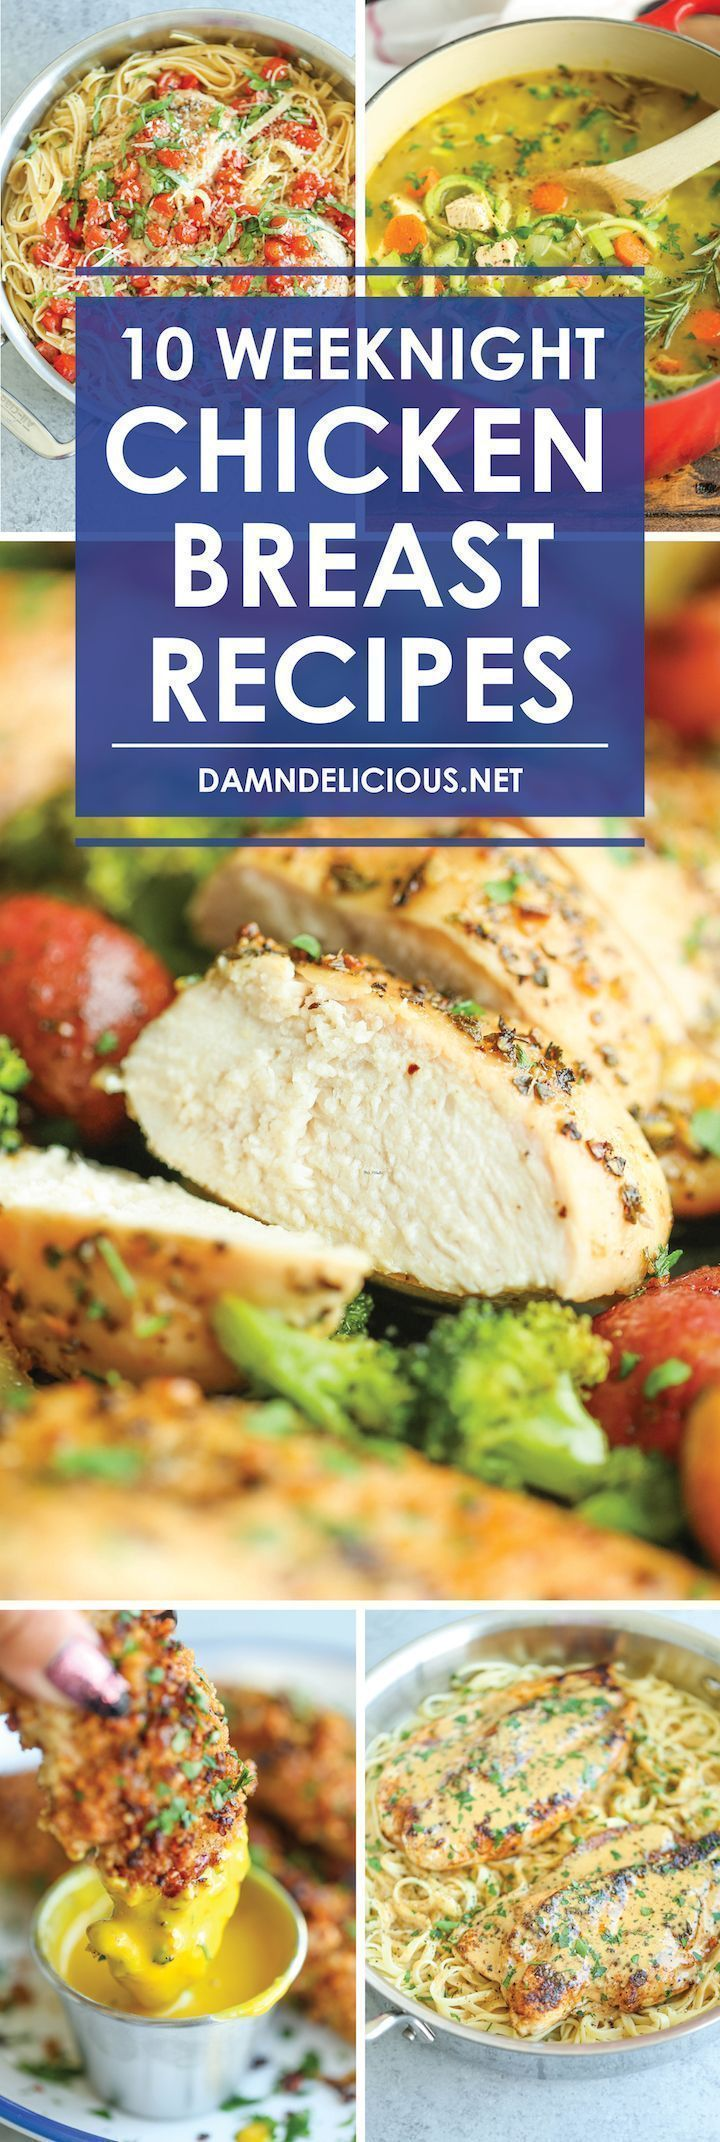 10 Weeknight Chicken Breast Recipes - Easy peasy recipes to use up all those chicken breasts in your fridge/freezer. These are quick, healthy and hearty!